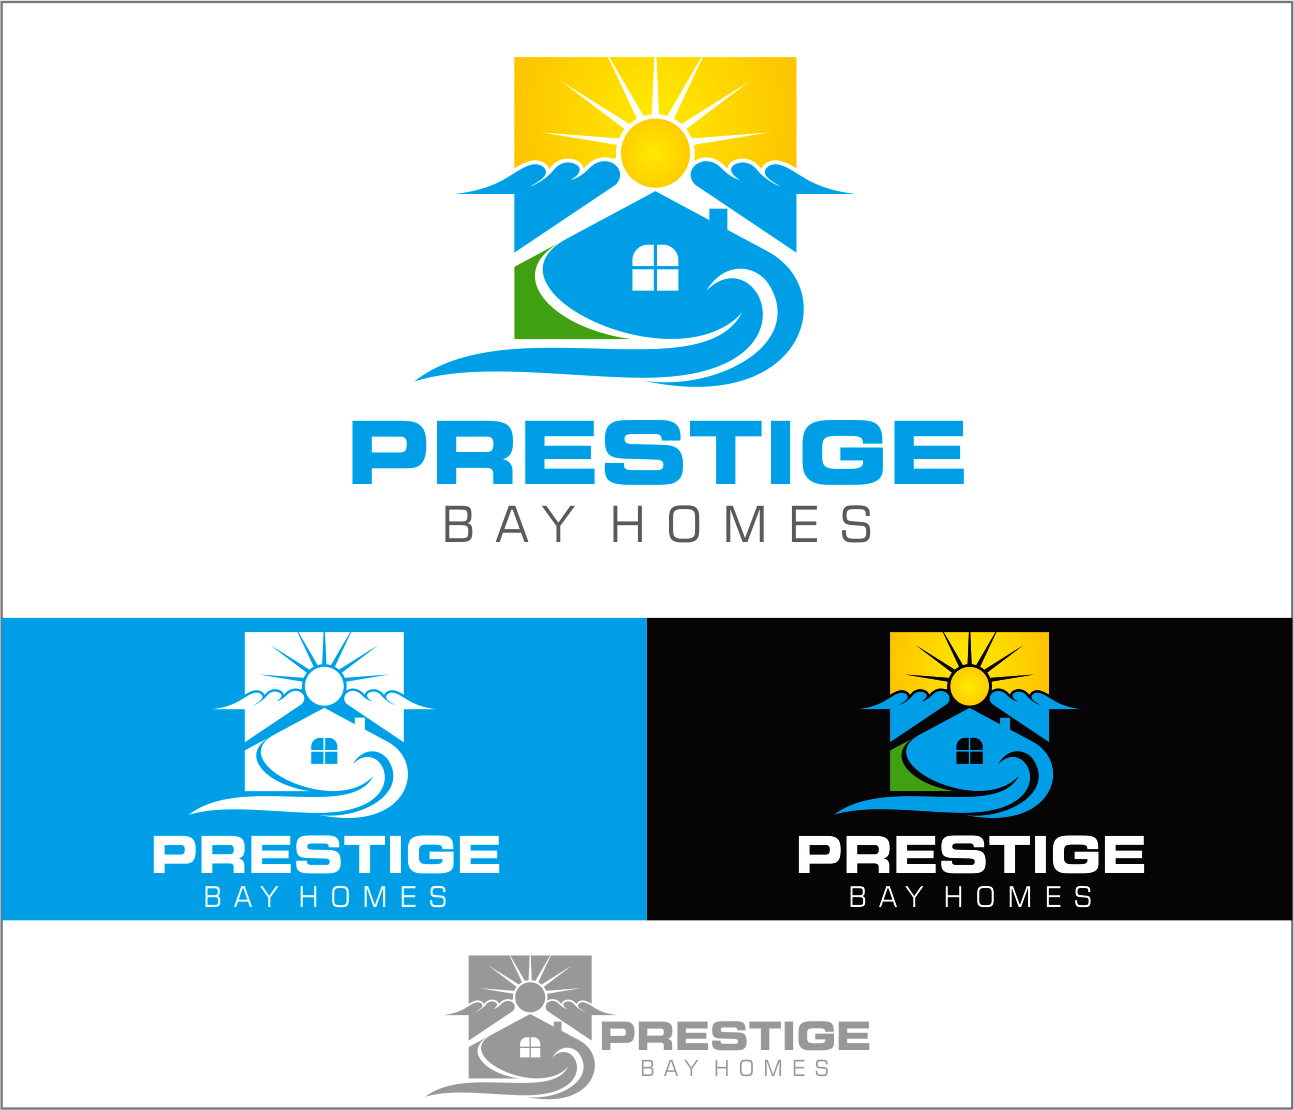 Logo Design by Armada Jamaluddin - Entry No. 154 in the Logo Design Contest Imaginative Logo Design for Prestige Bay Homes.